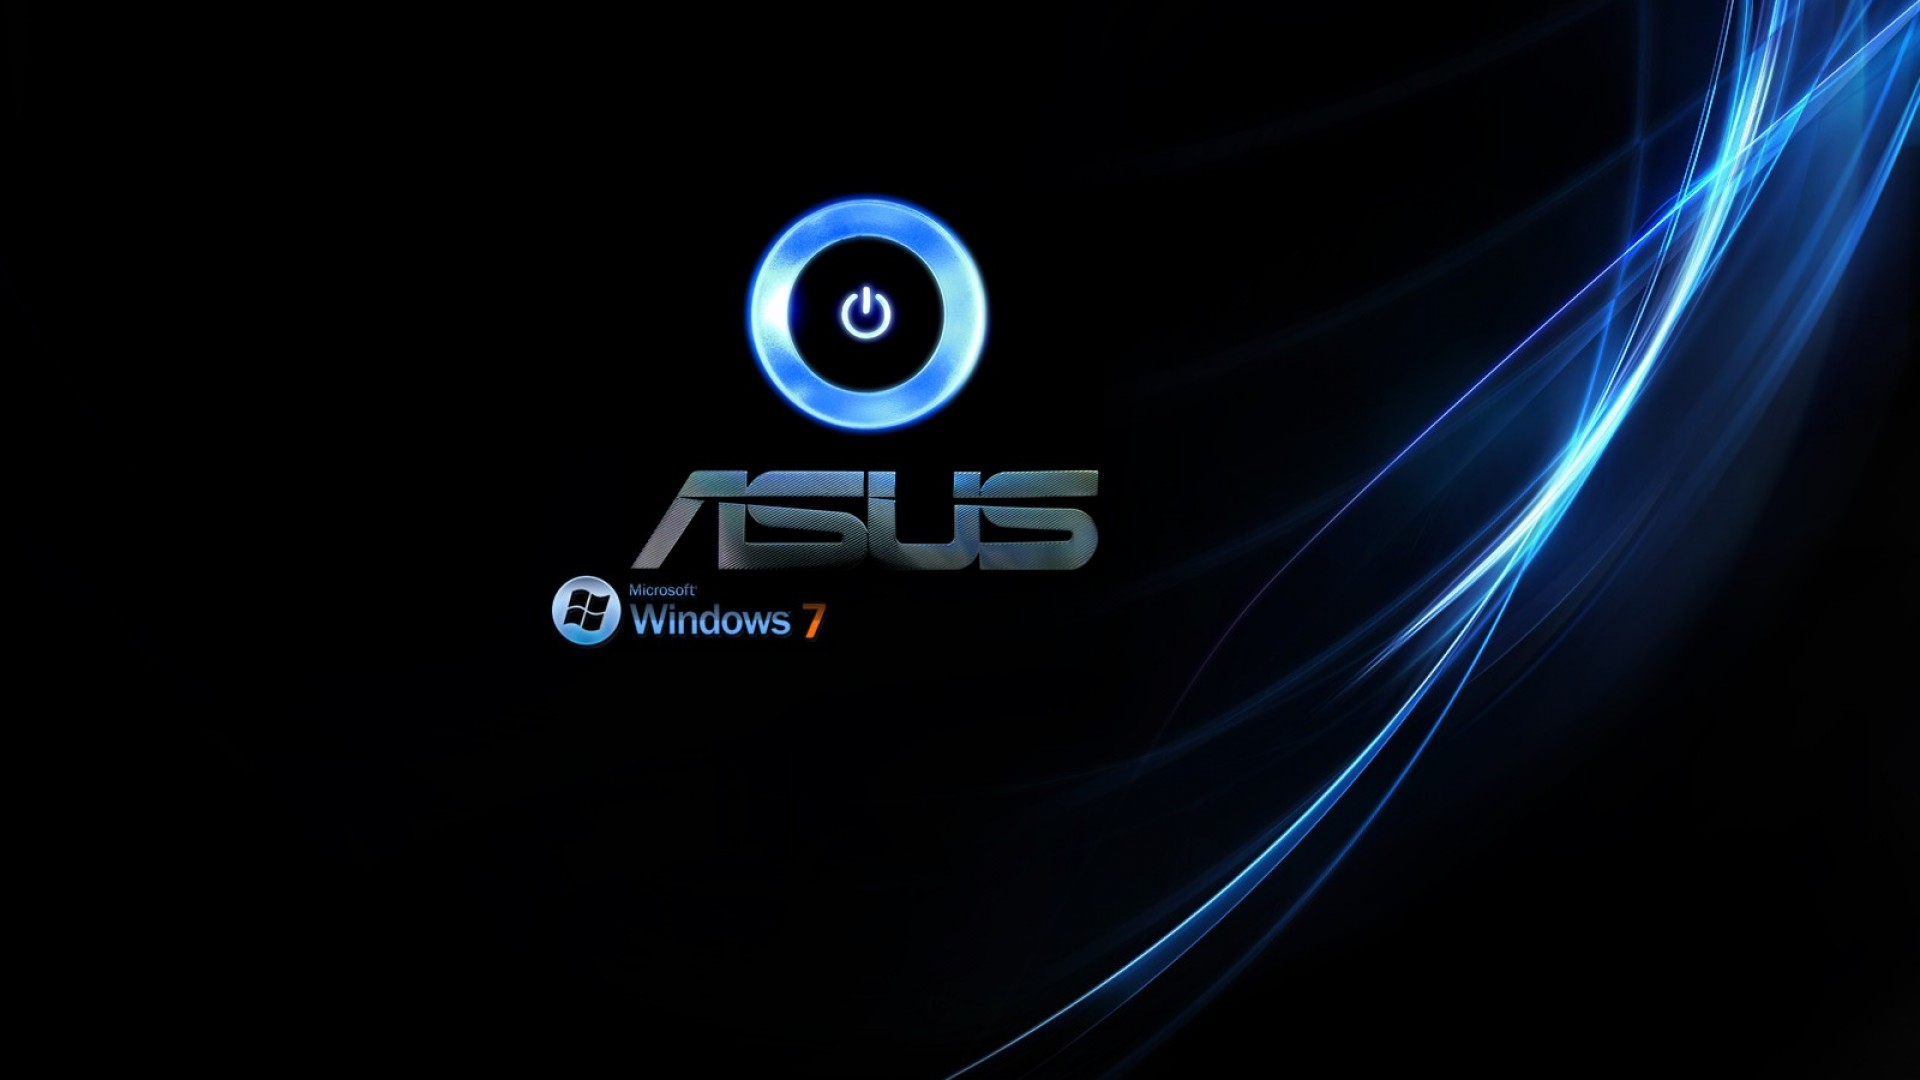 <b>Asus Computer</b> Wallpapers, <b>Desktop</b> Backgrounds | <b>1920x1080</b> | ID:177591